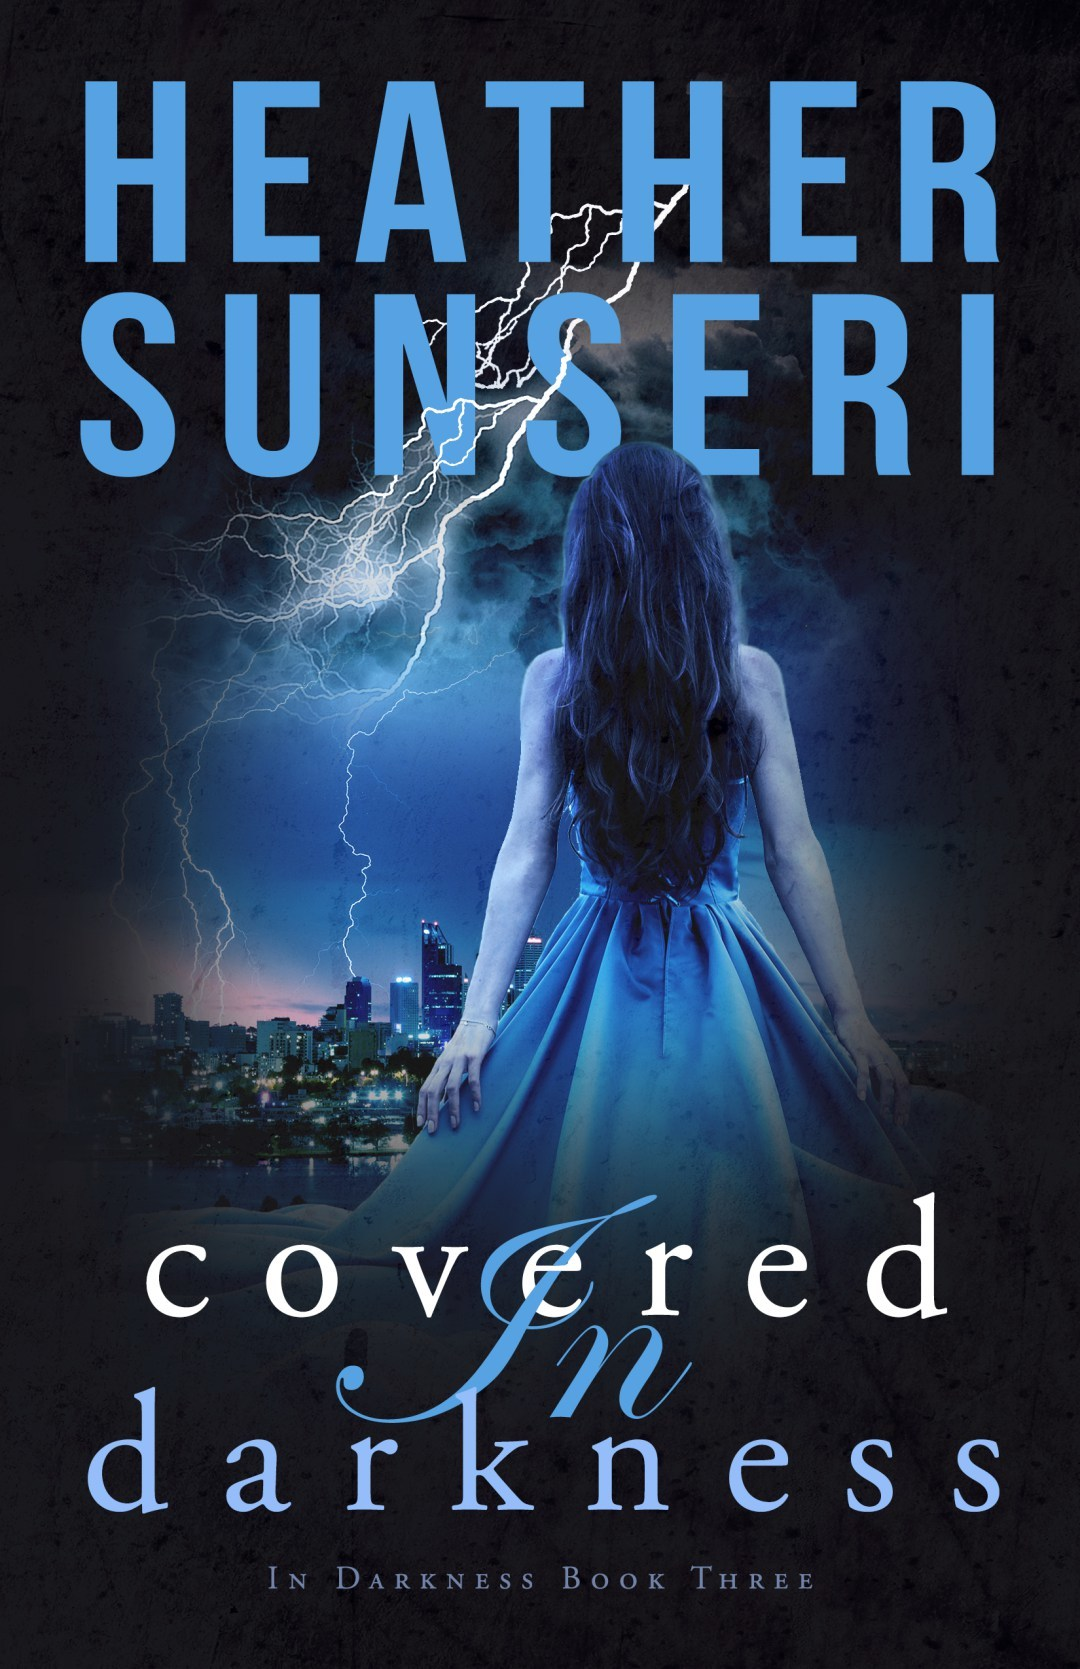 Heather Sunseri - In Darkness 3 - Covered in Darkness